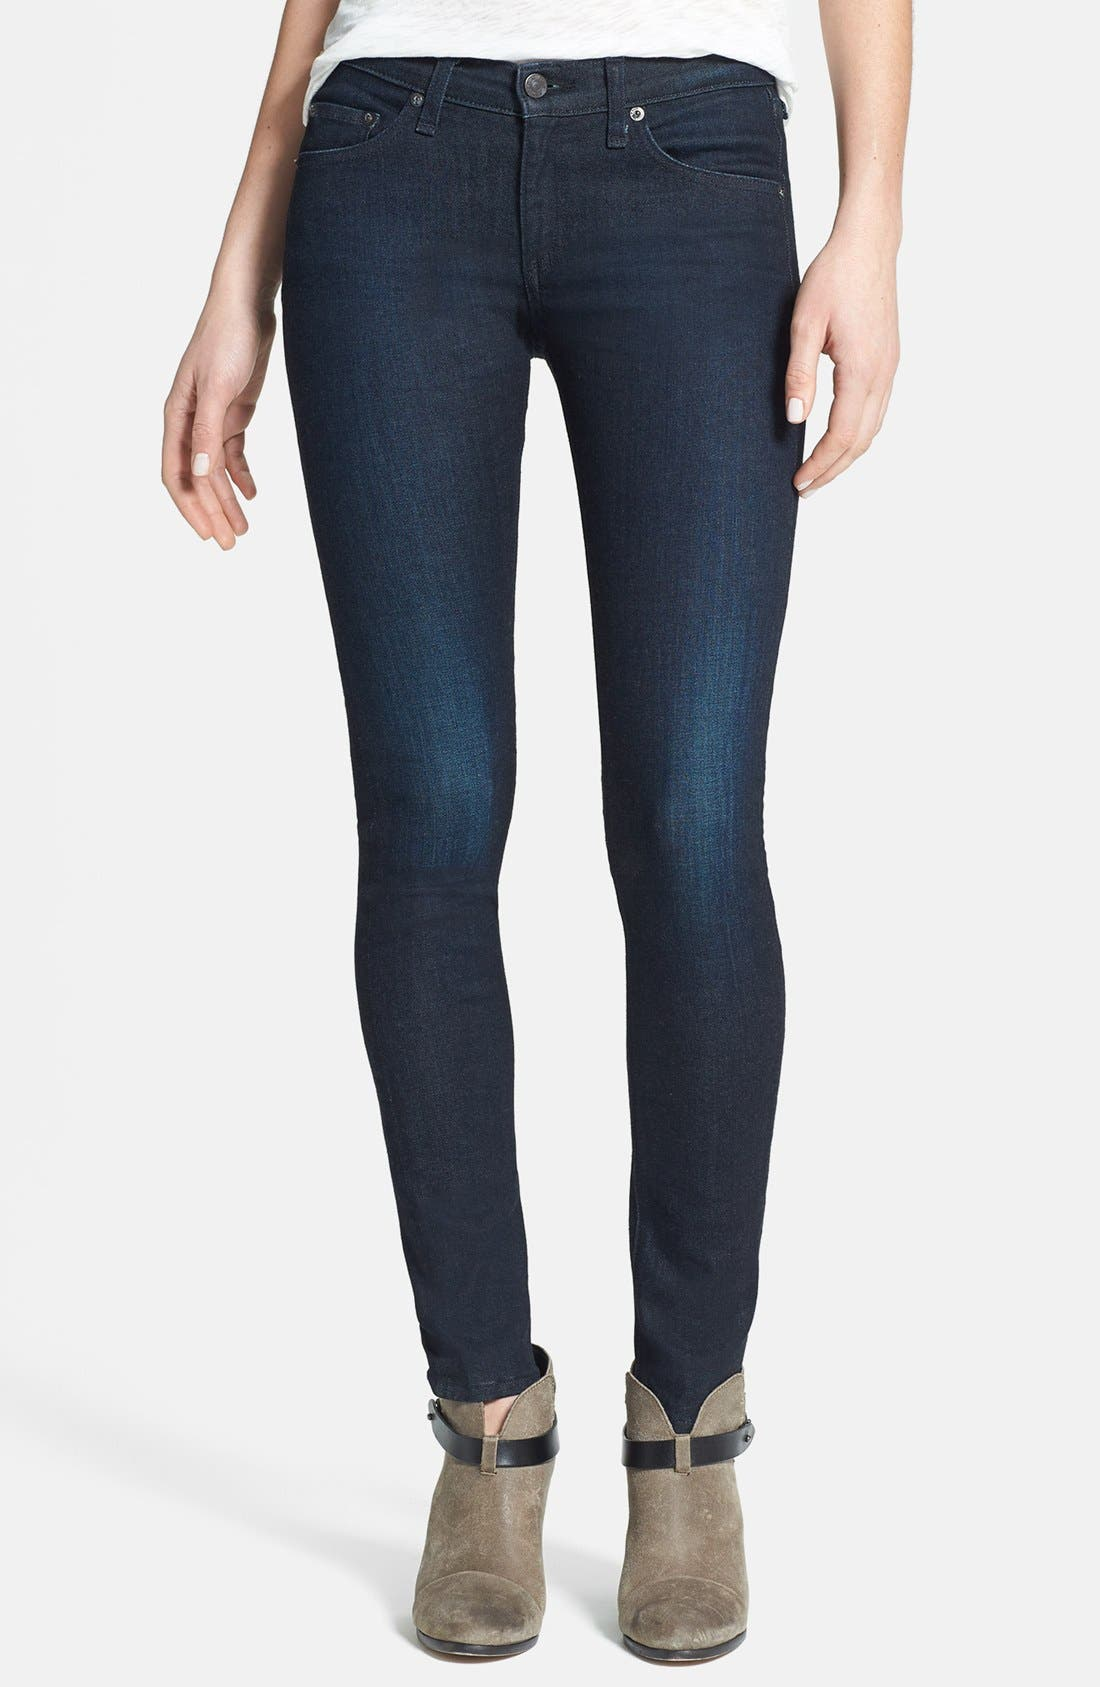 Alternate Image 1 Selected - rag & bone/JEAN Skinny Stretch Jeans (Heritage)